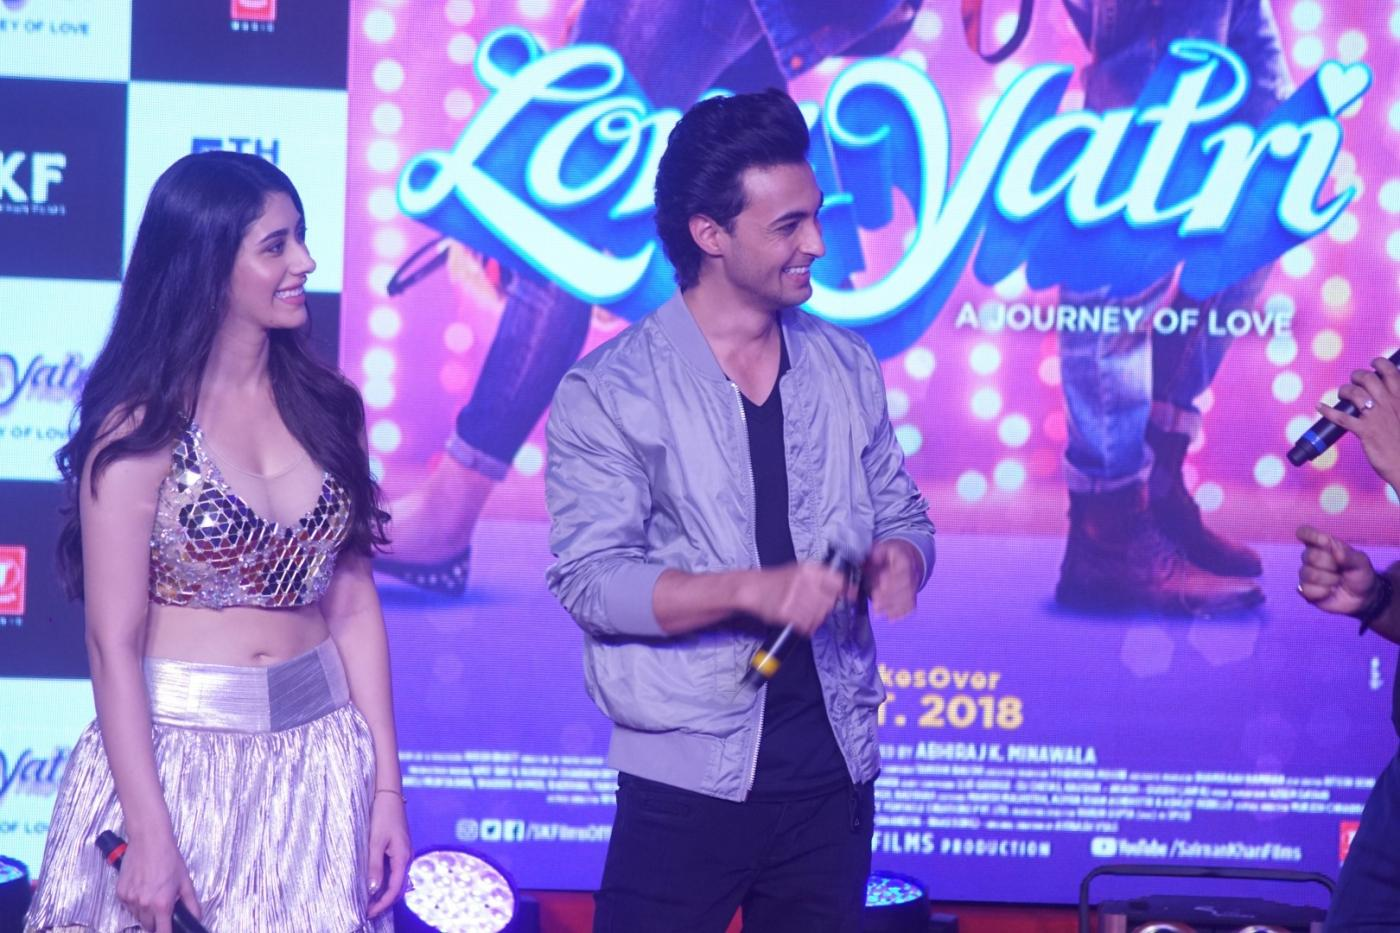 "Mumbai: Actors Warina Hussain and Aayush Sharma at musical concert celebrating the journey of upcoming film ""Loveyatri"" in Mumbai on Sept 26, 2018. (Photo: IANS) by ."